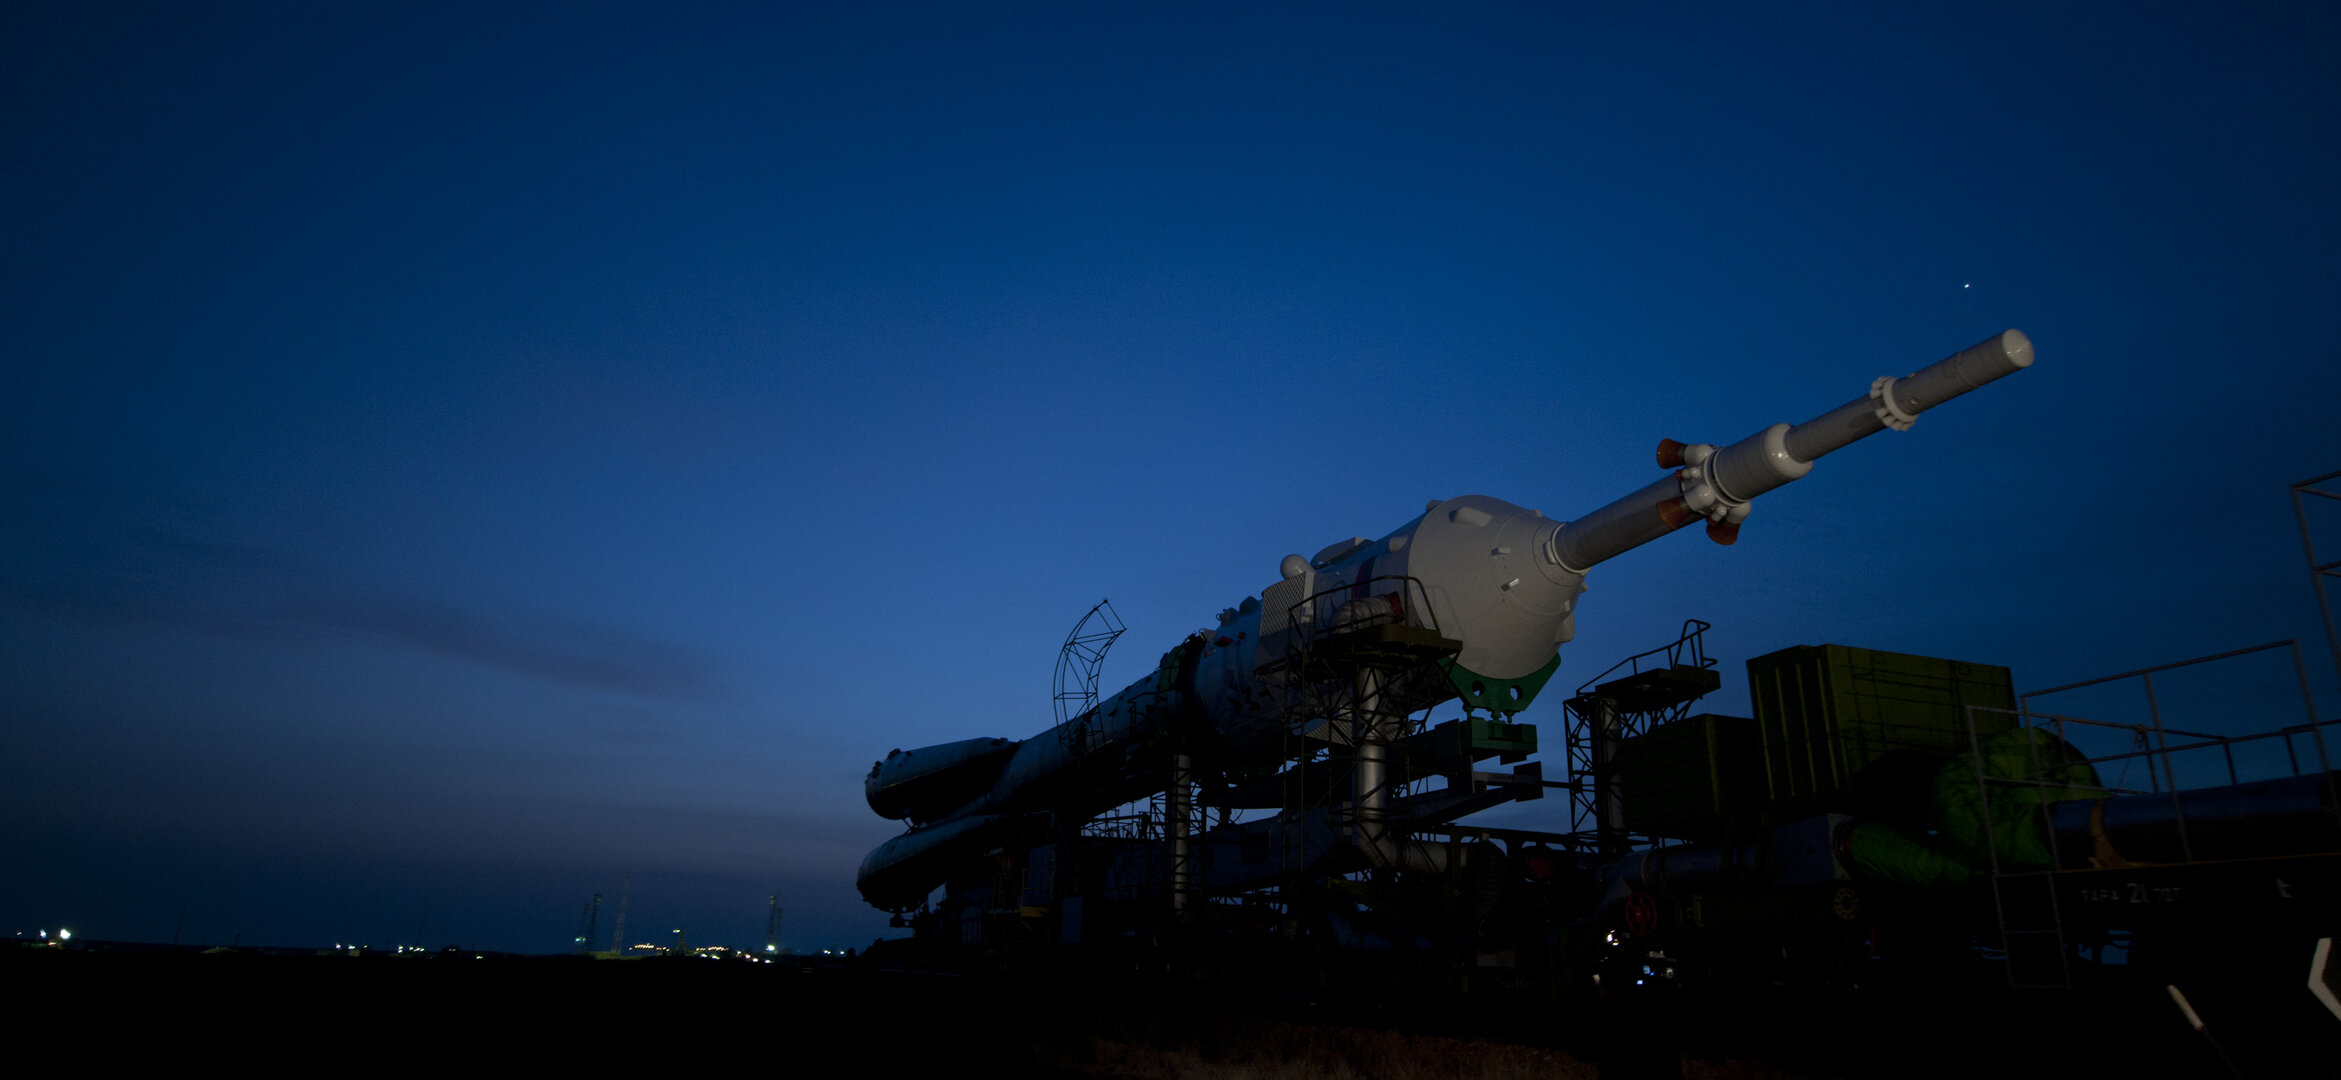 The Soyuz launcher is transfered to the launch pad